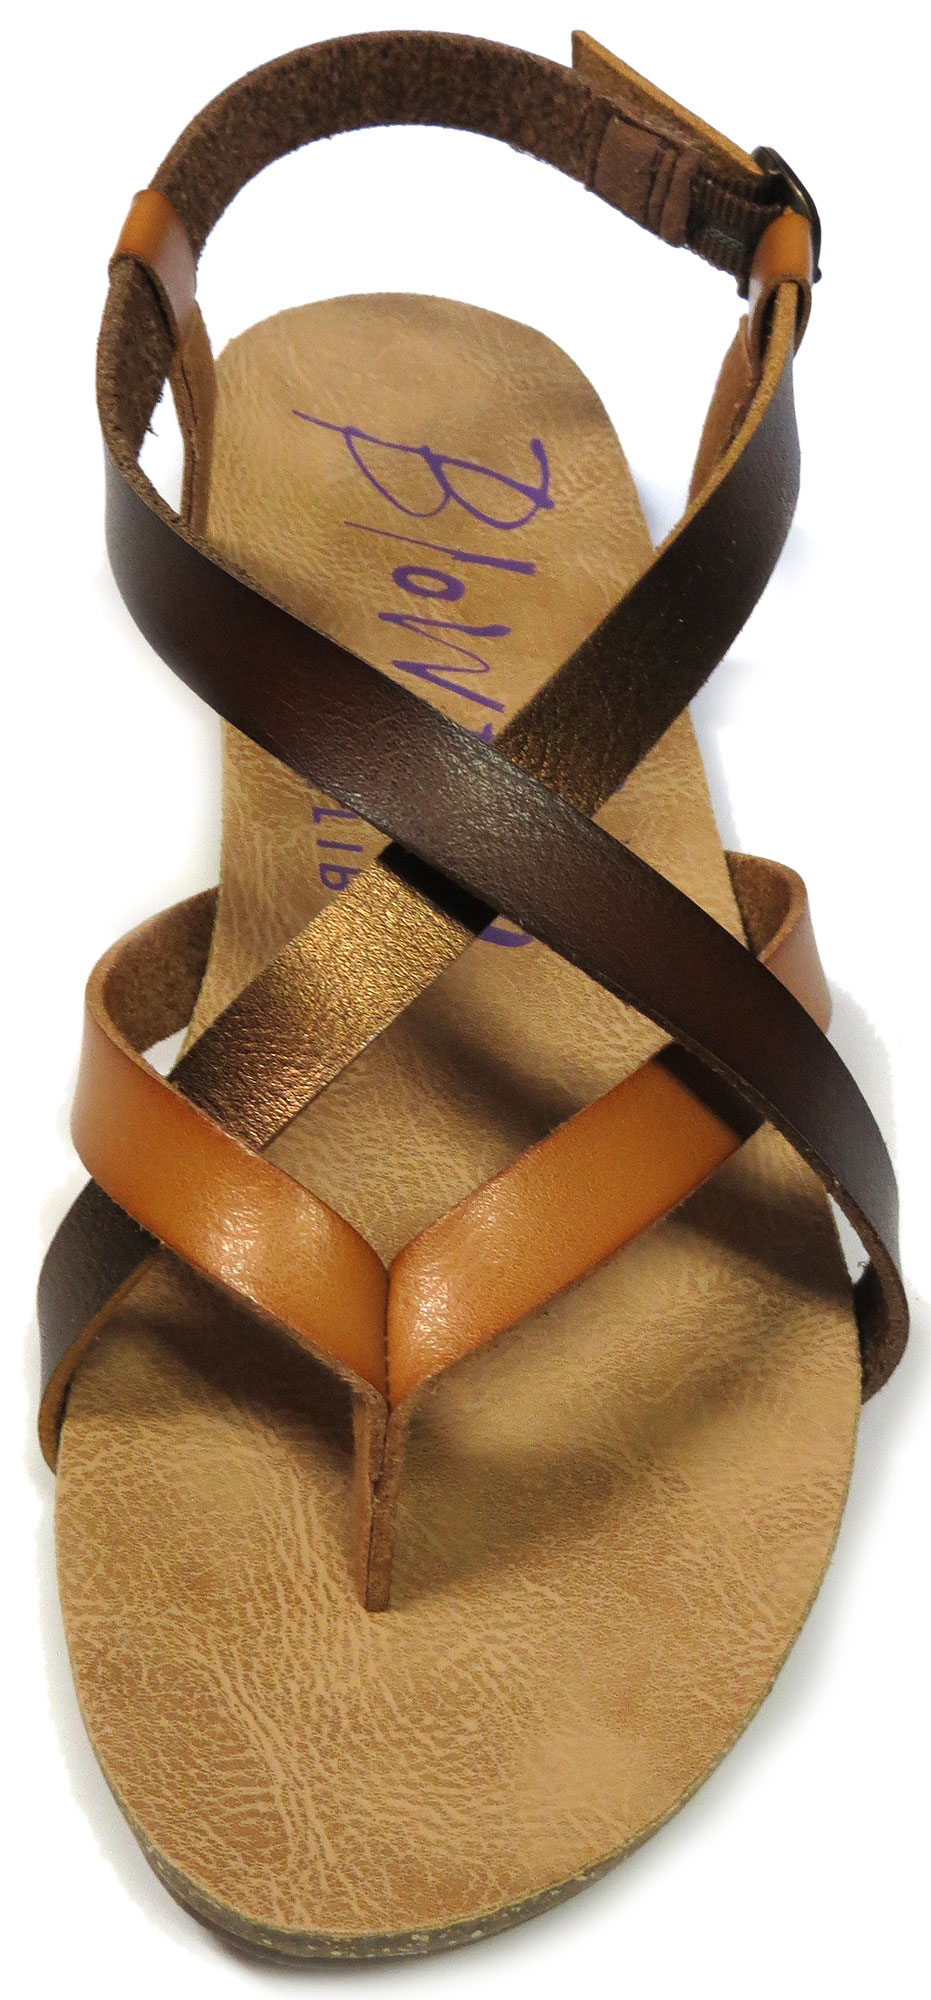 7339e01bf17e Our best-selling sandal style is back for 2018! Vegan leather straps in  matte and metallic earth tones with a contoured footbed and no-slip rubber  soles.